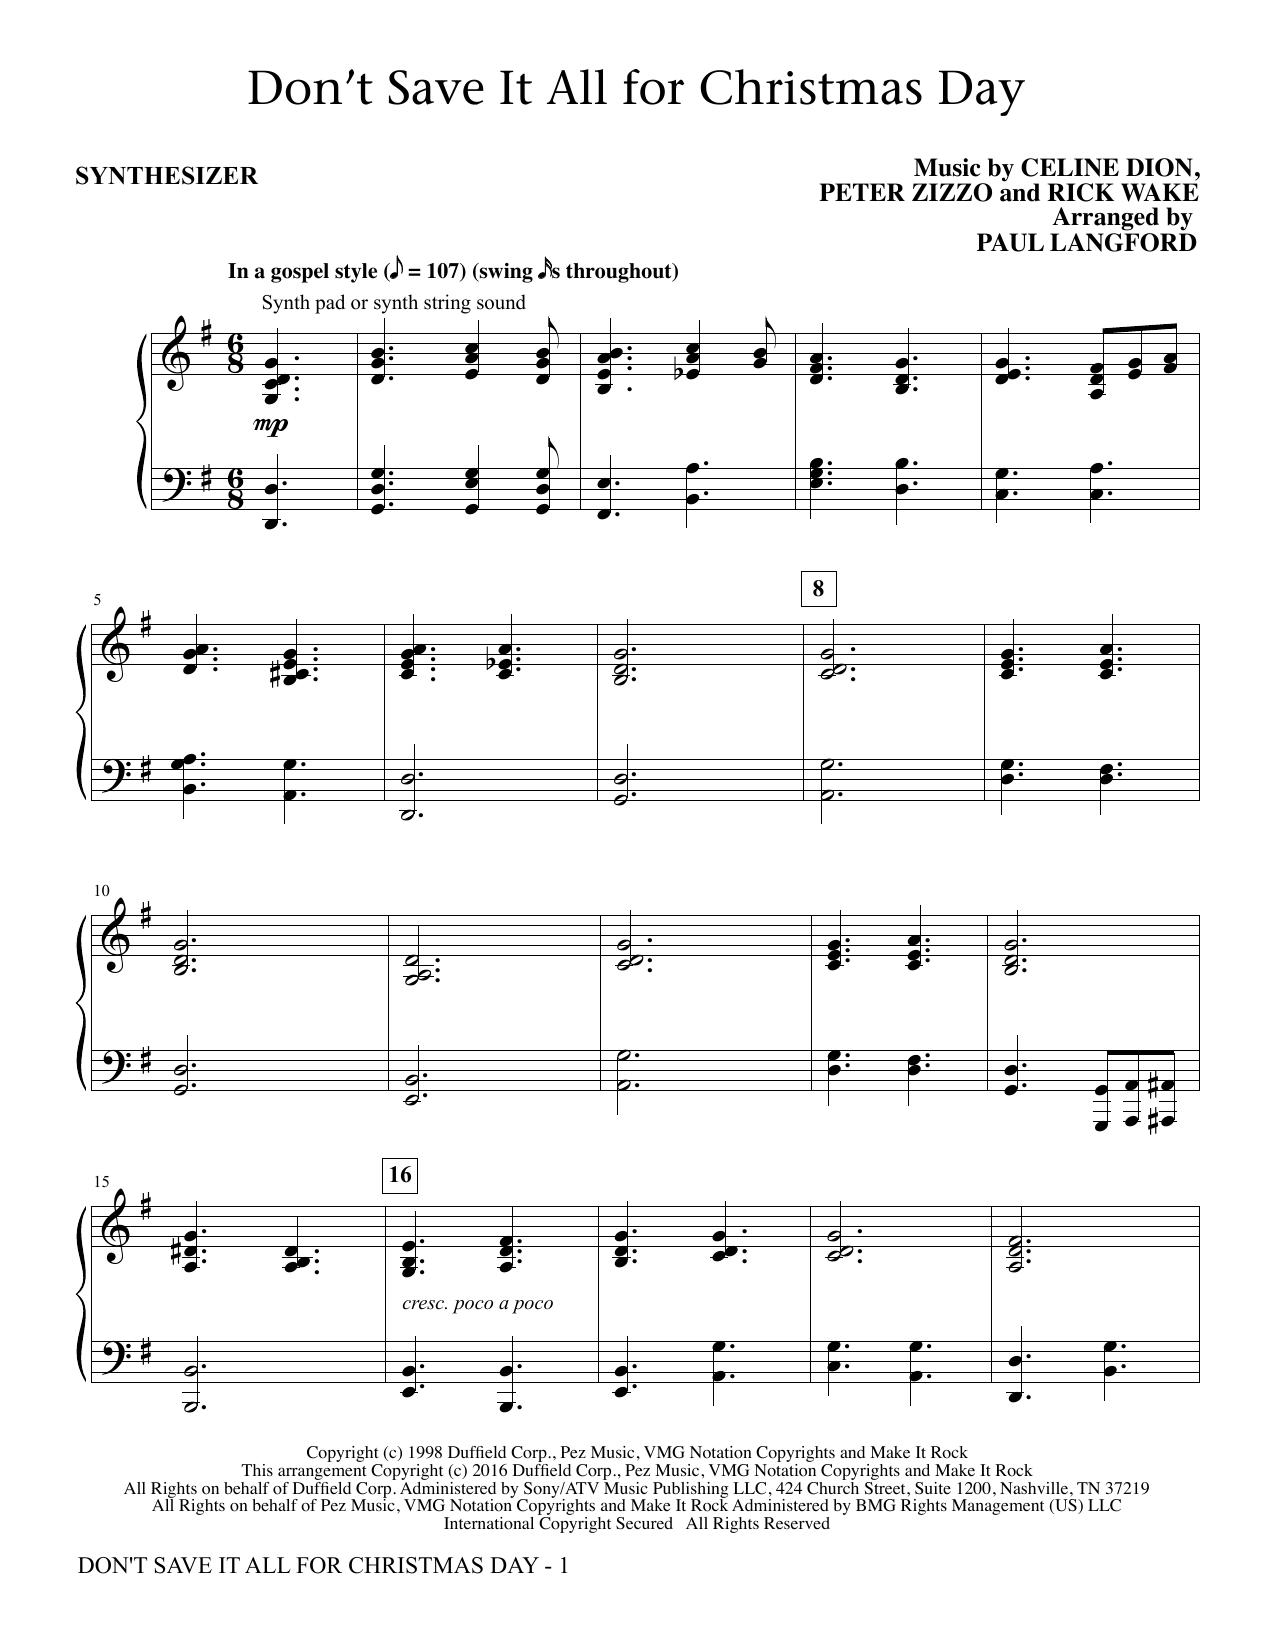 Don't Save It All for Christmas Day (complete set of parts) sheet music for orchestra/band by Paul Langford, Celine Dion, Peter Zizzo and Ric Wake. Score Image Preview.